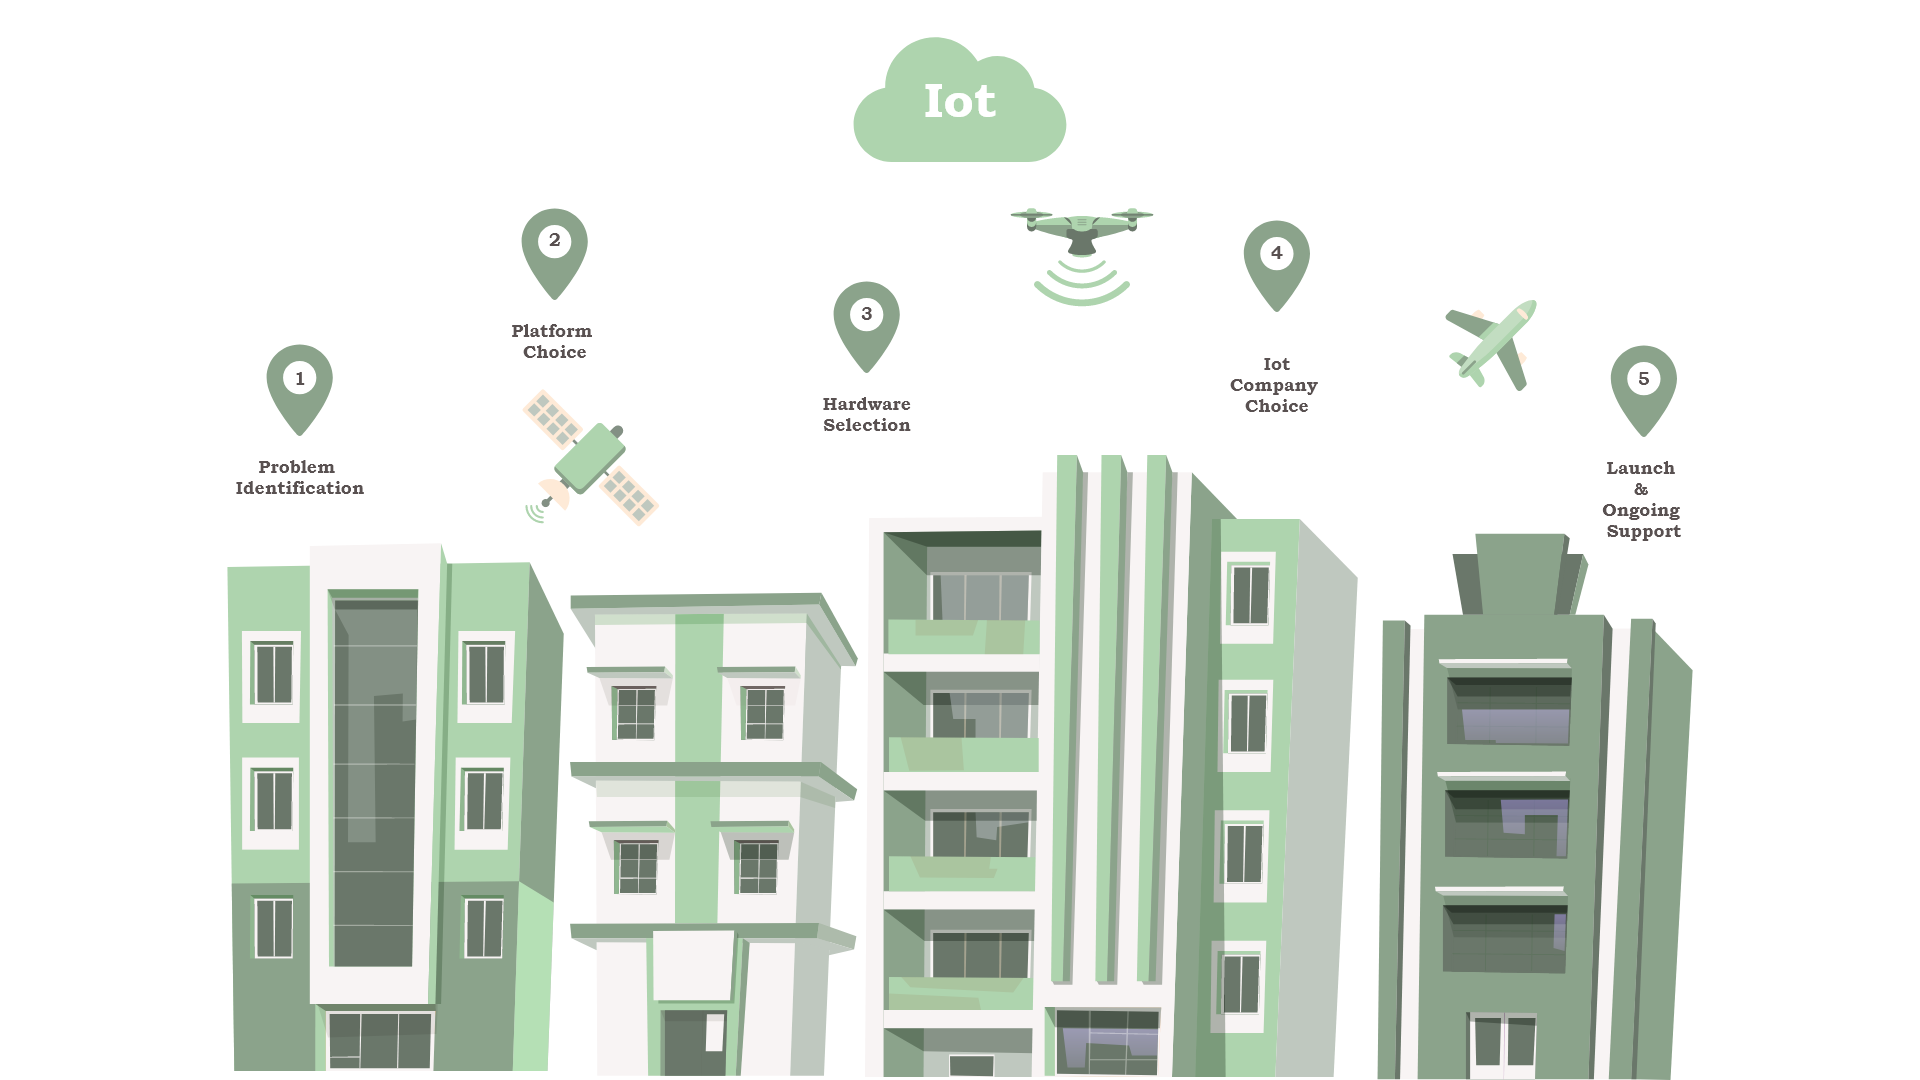 How to Make an IoT App: Step-by-Step Guide